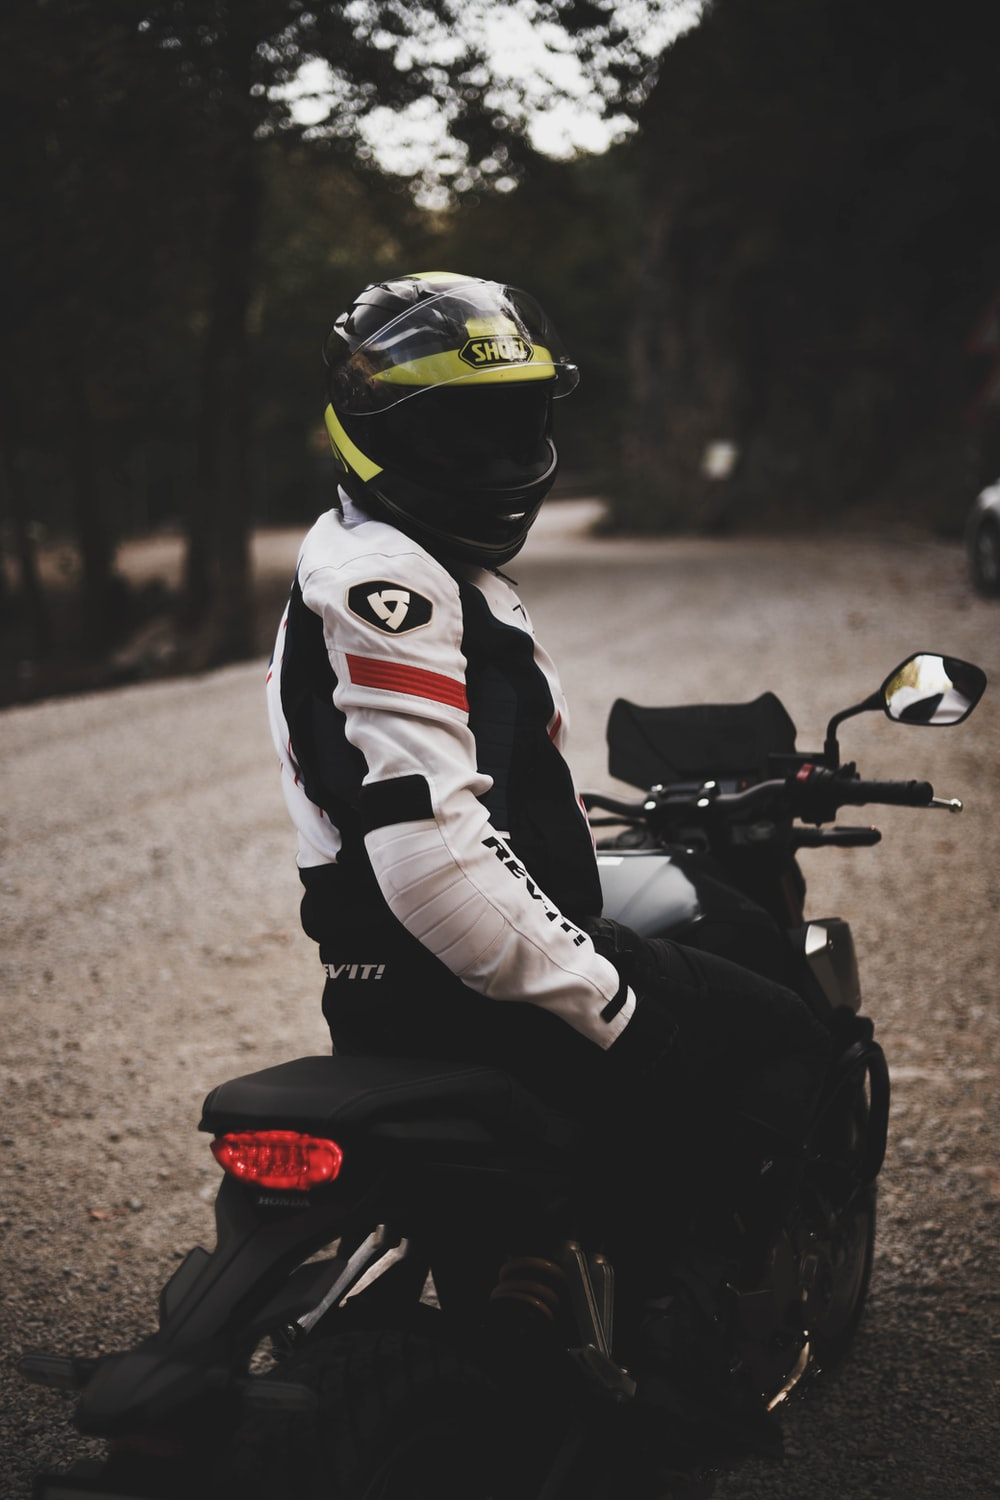 person in white red and black motorcycle helmet riding on black motorcycle during daytime